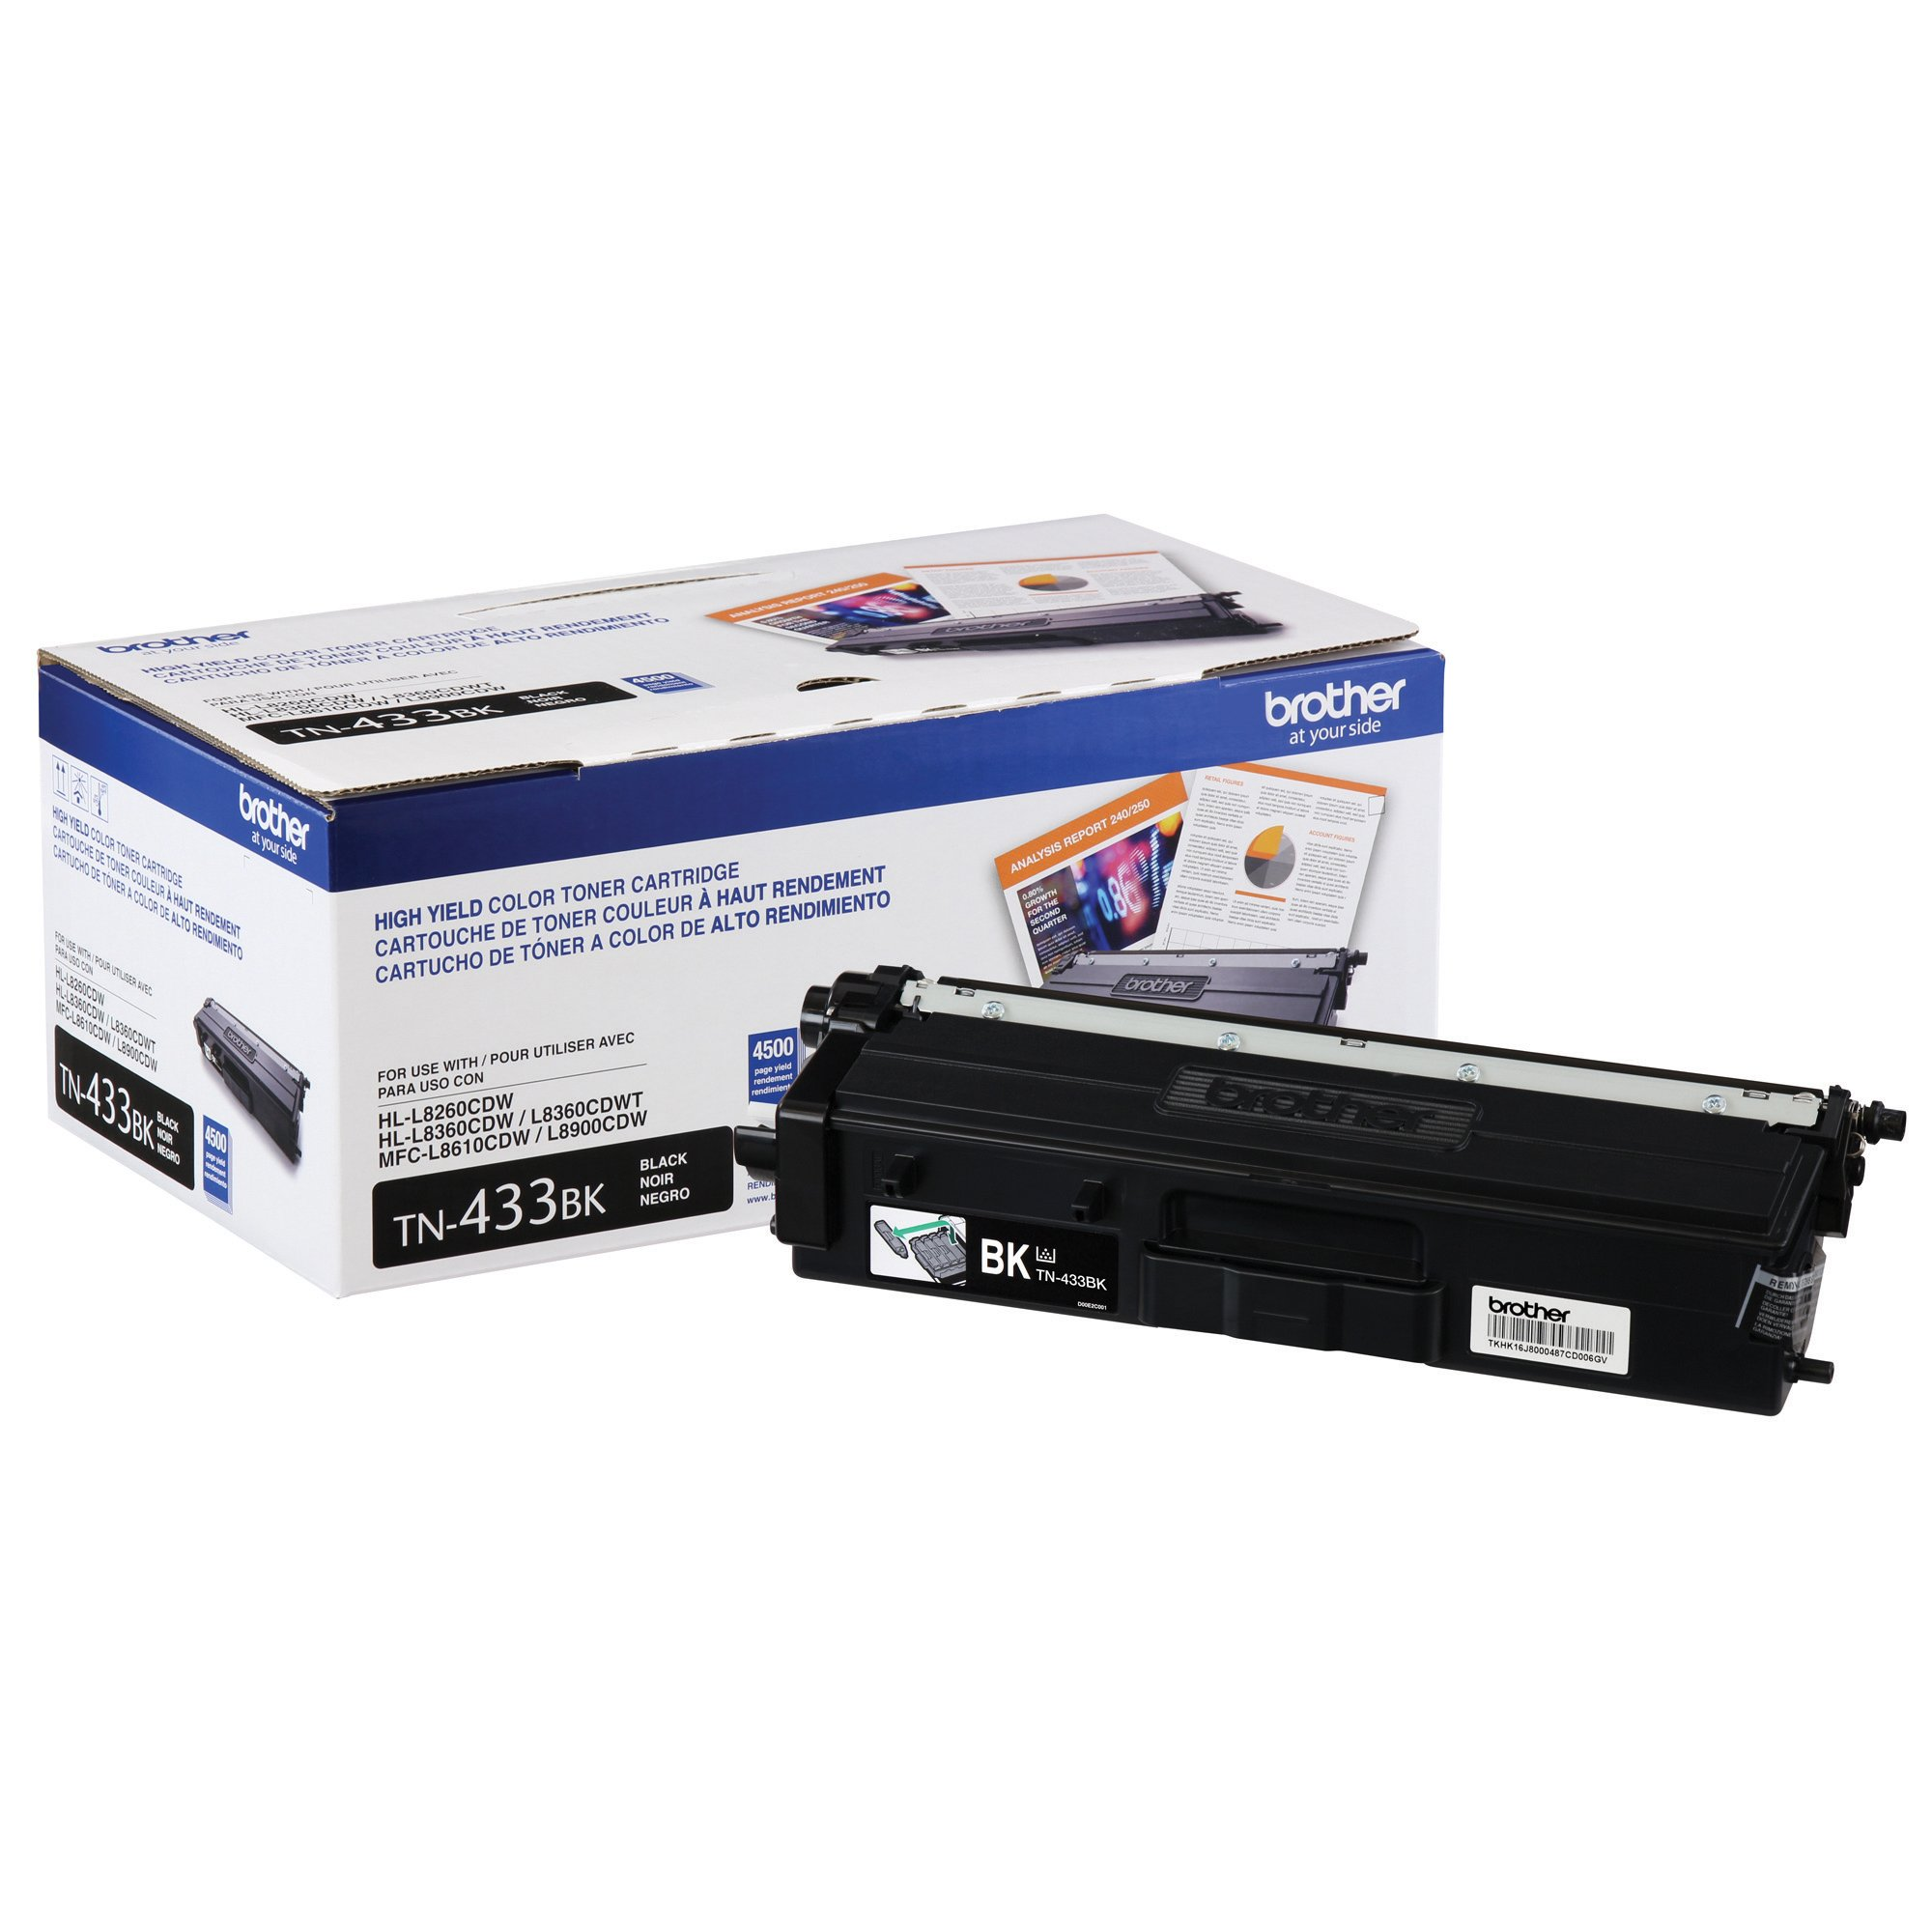 Brother Black-Toner-Cartridge-High-Yield-Brother-MFC-L8900